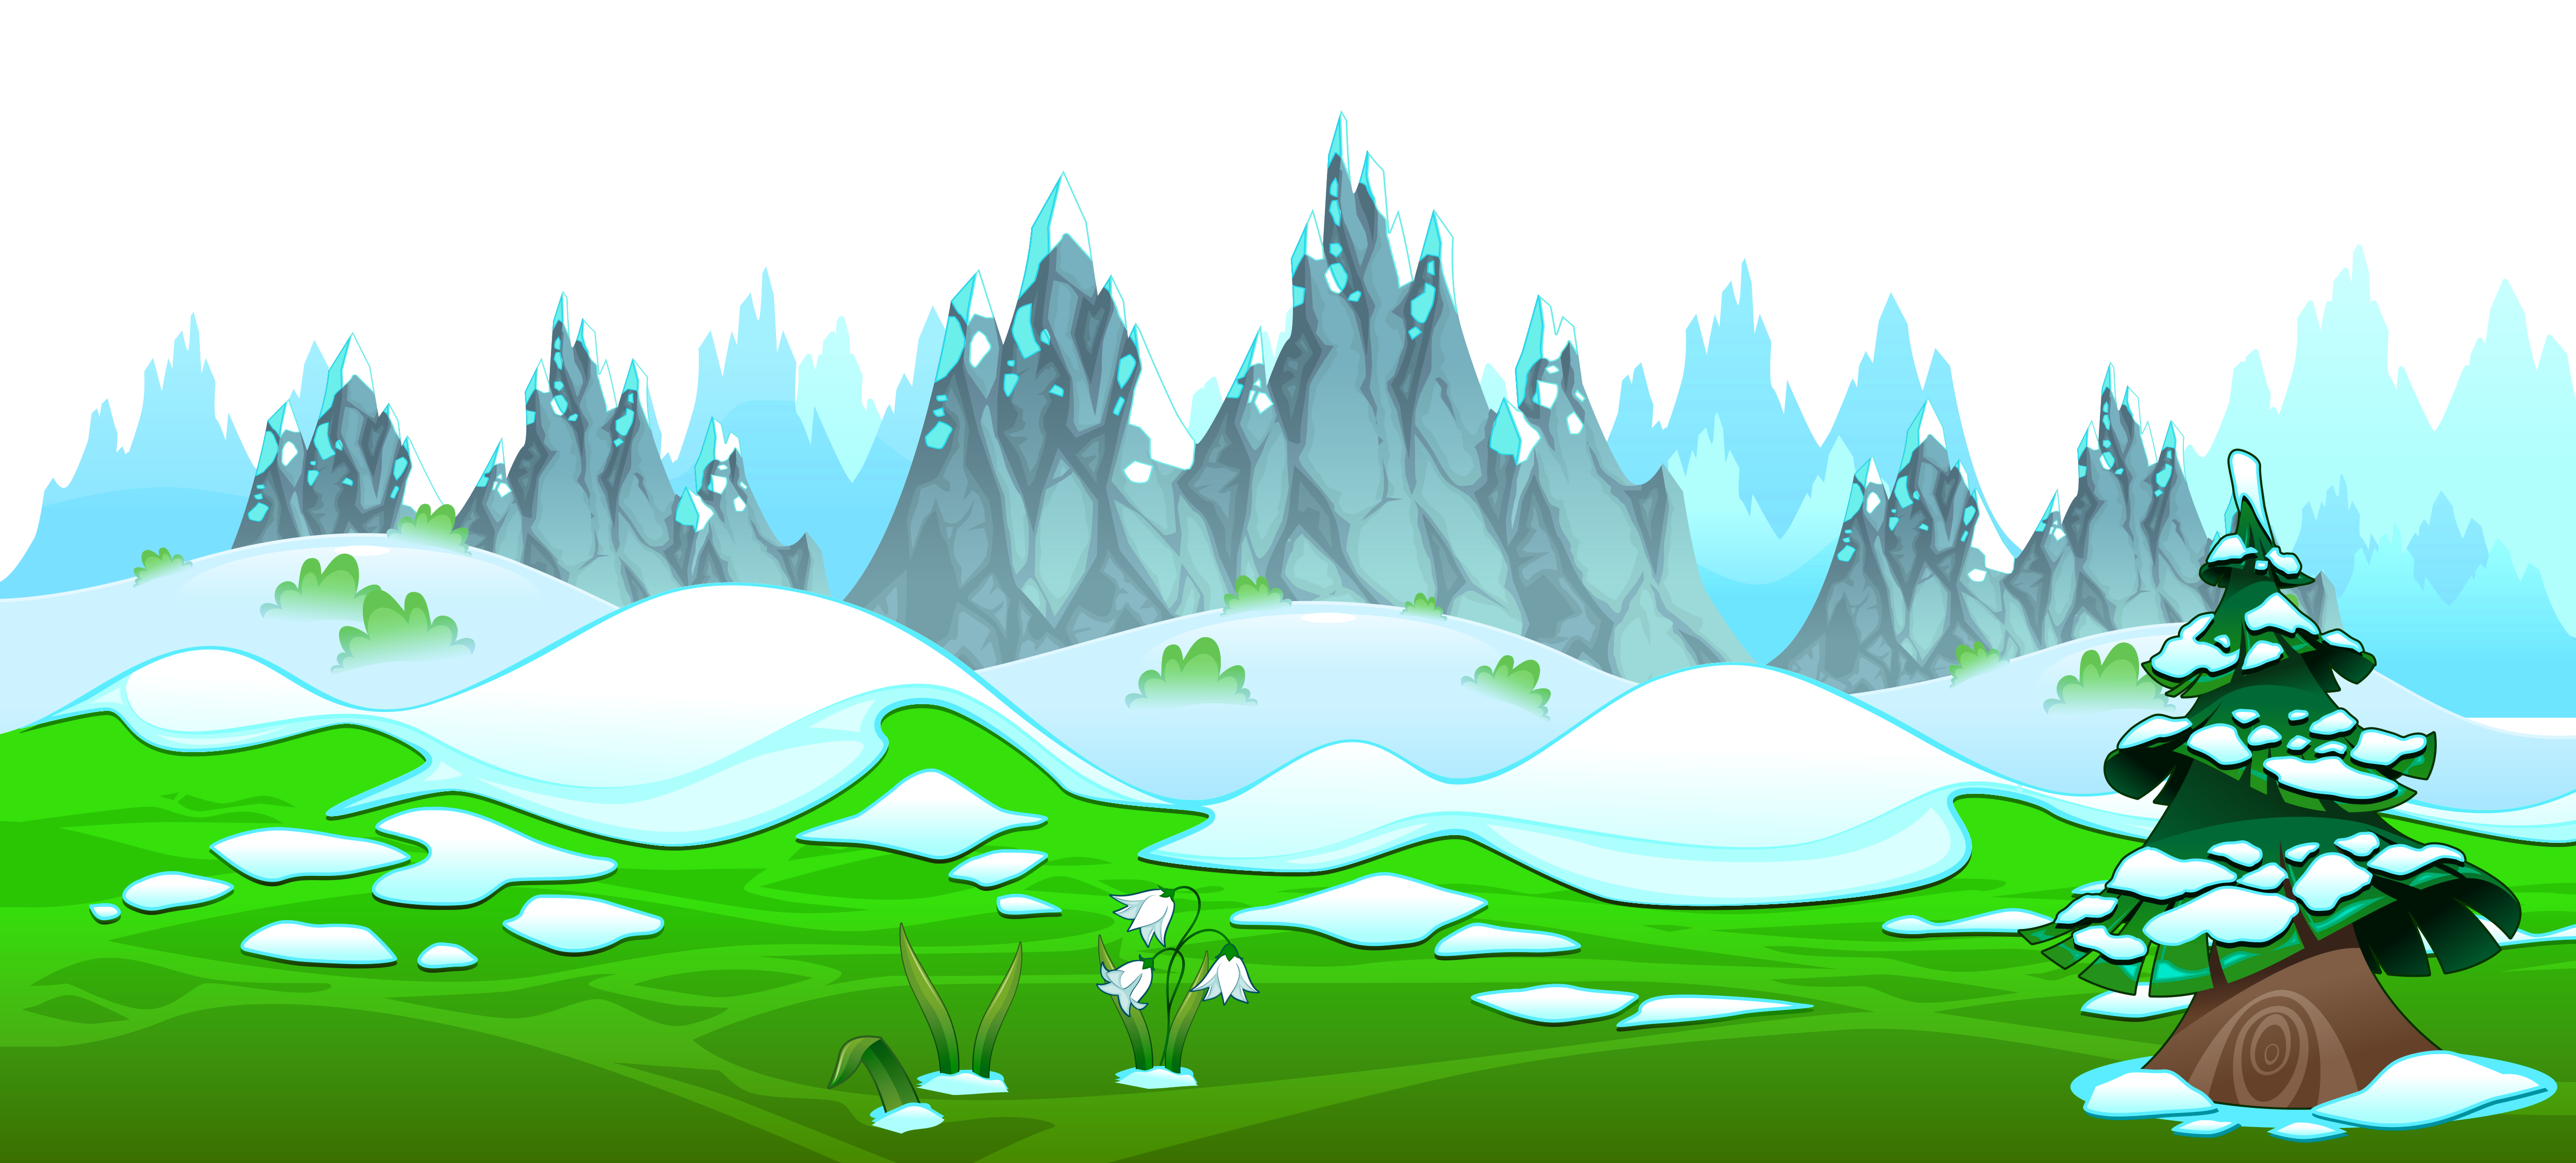 Early spring with icy. Forest clipart mountains graphic freeuse stock